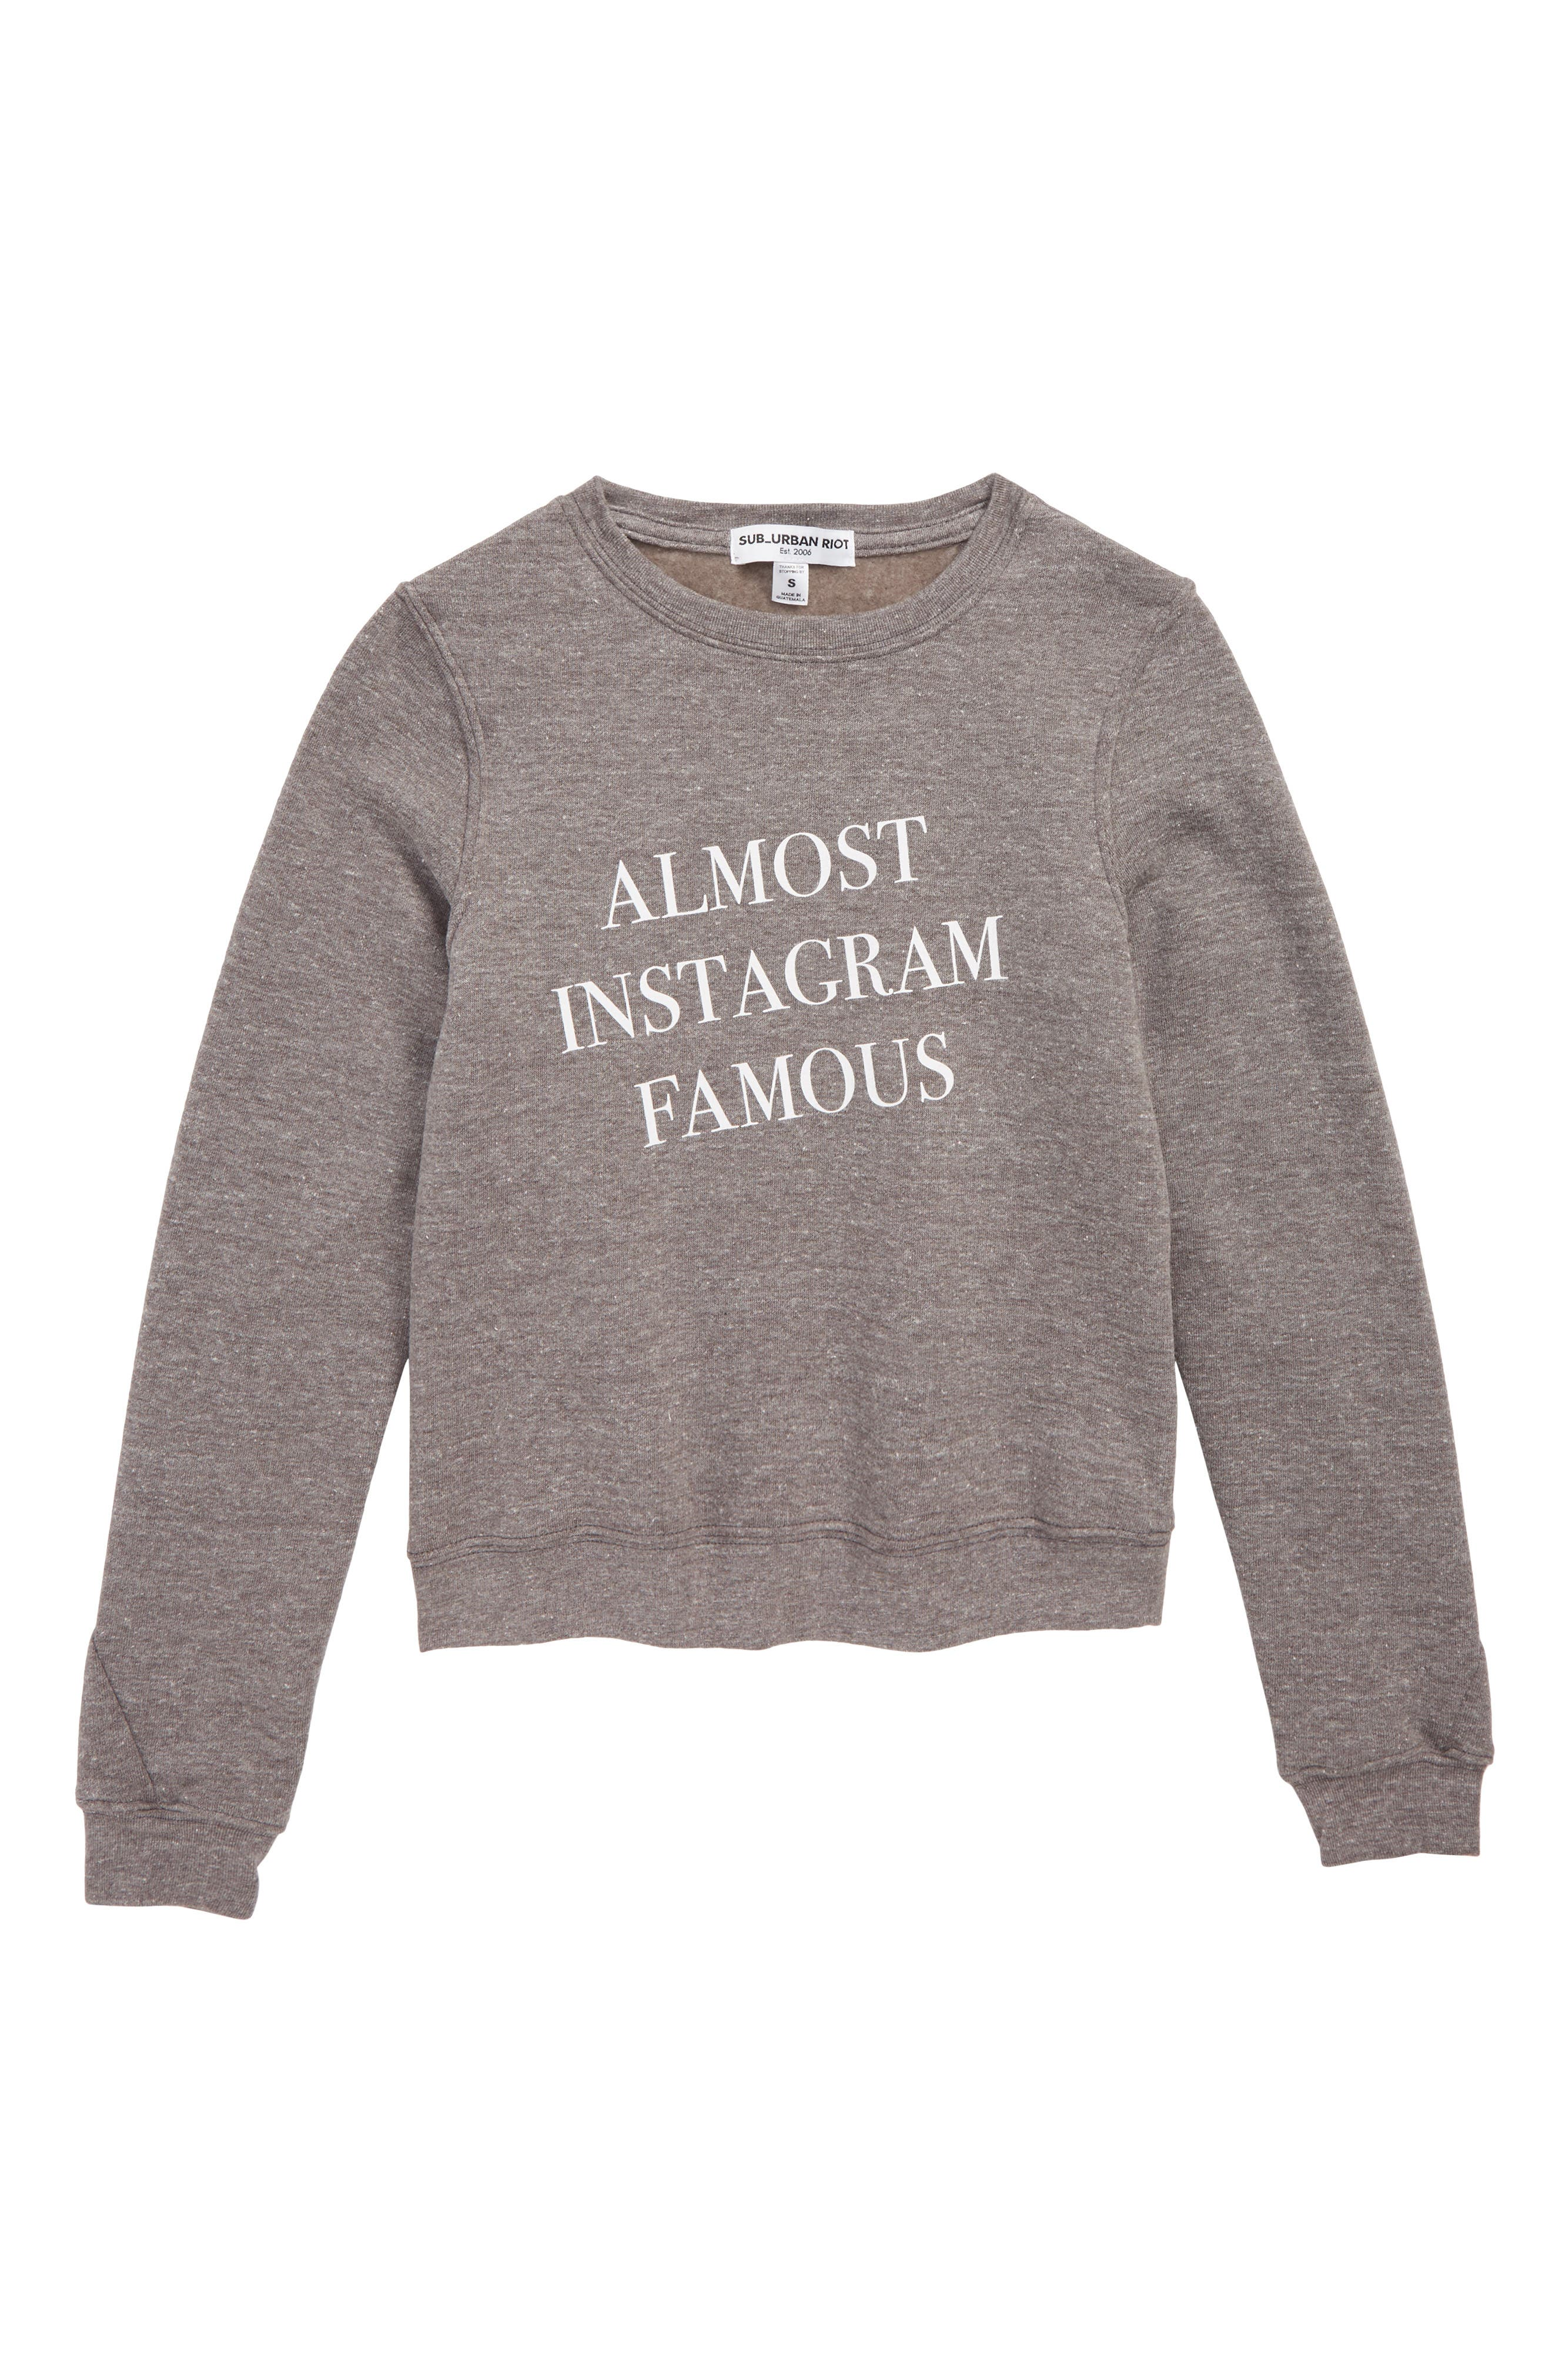 Almost Instagram Famous Pullover,                         Main,                         color, GRAY